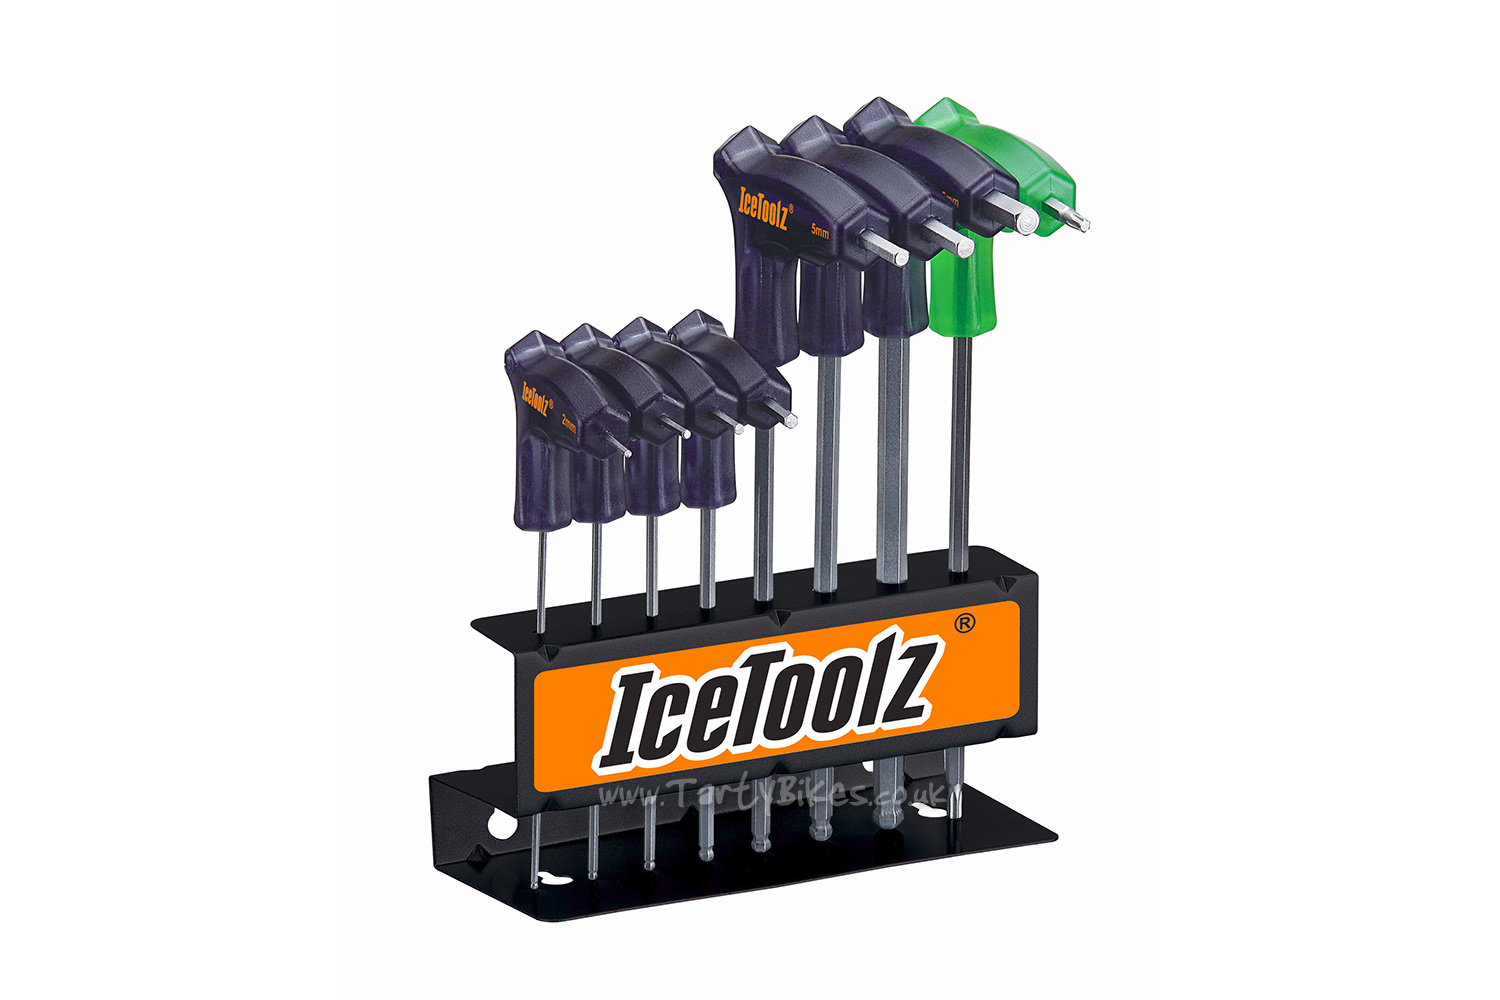 IceToolz Pro Shop Allen Key Set